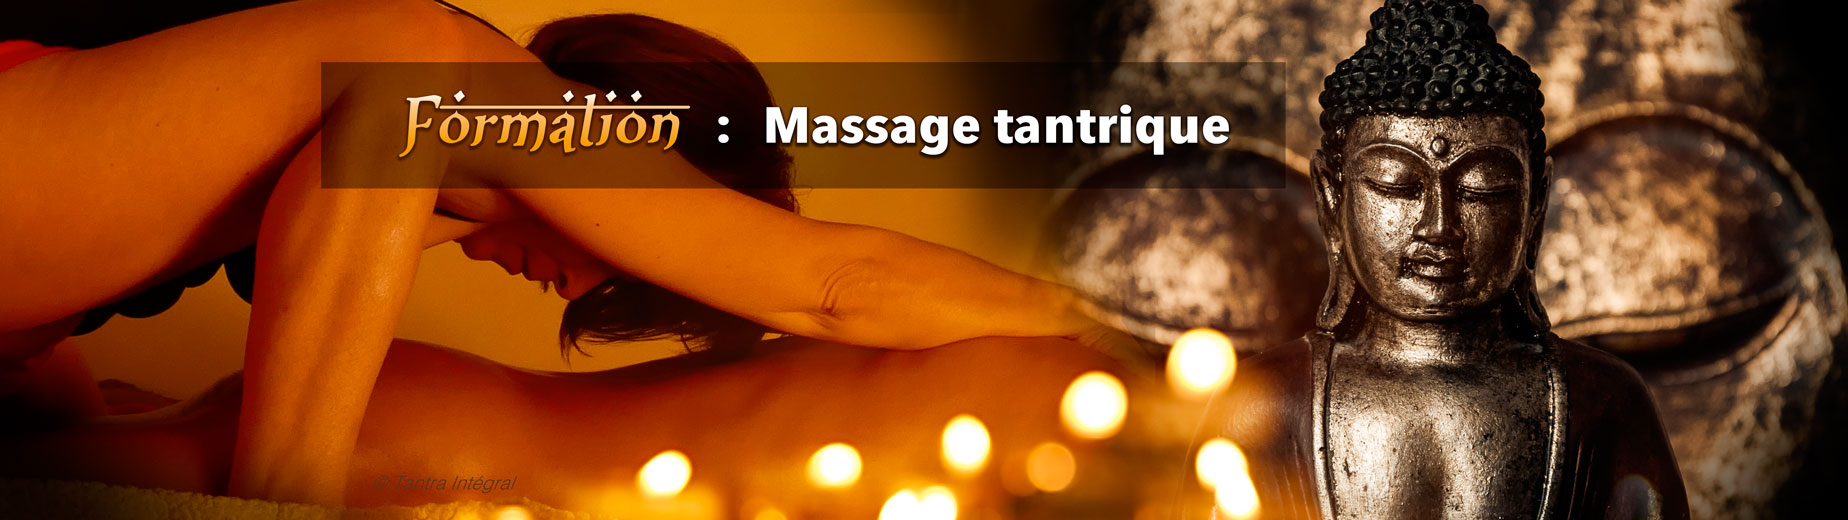 Pano-Formation-Massage-tantriqueZF